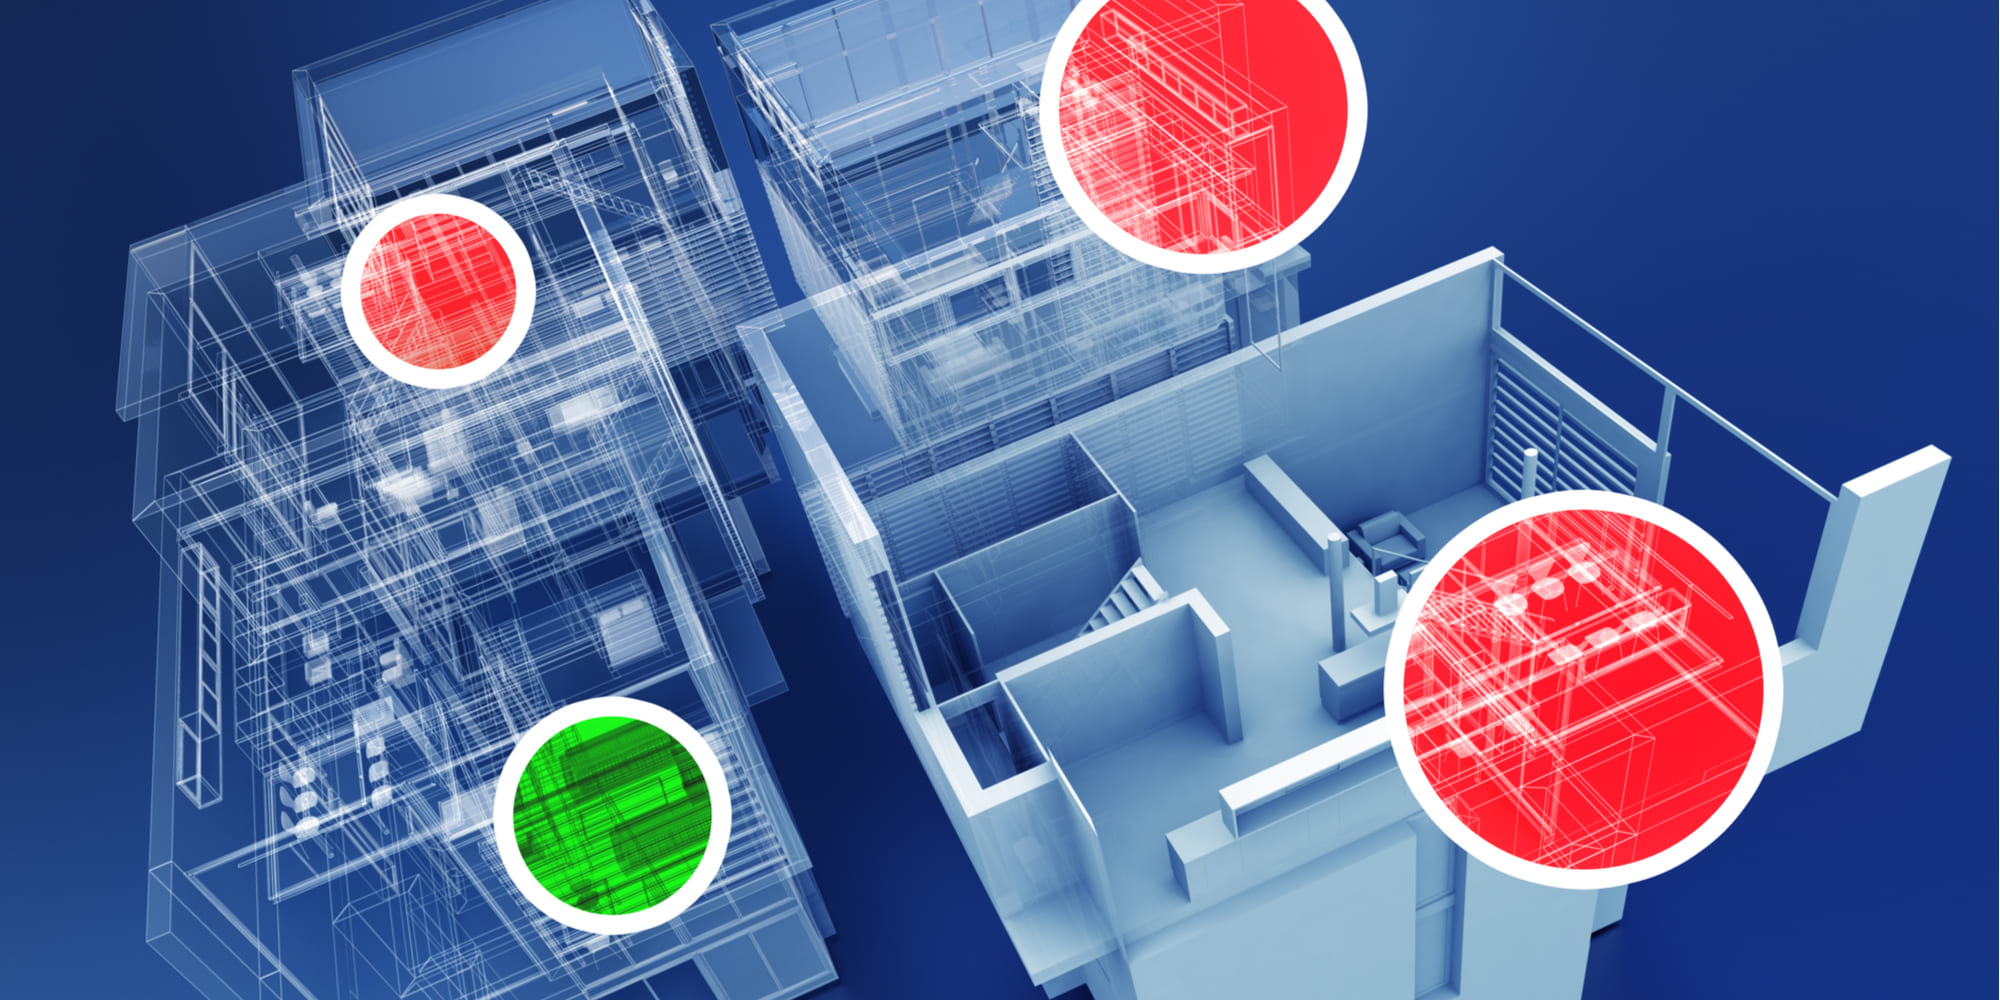 Importance of Measurements in the LEED Certification for Buildings